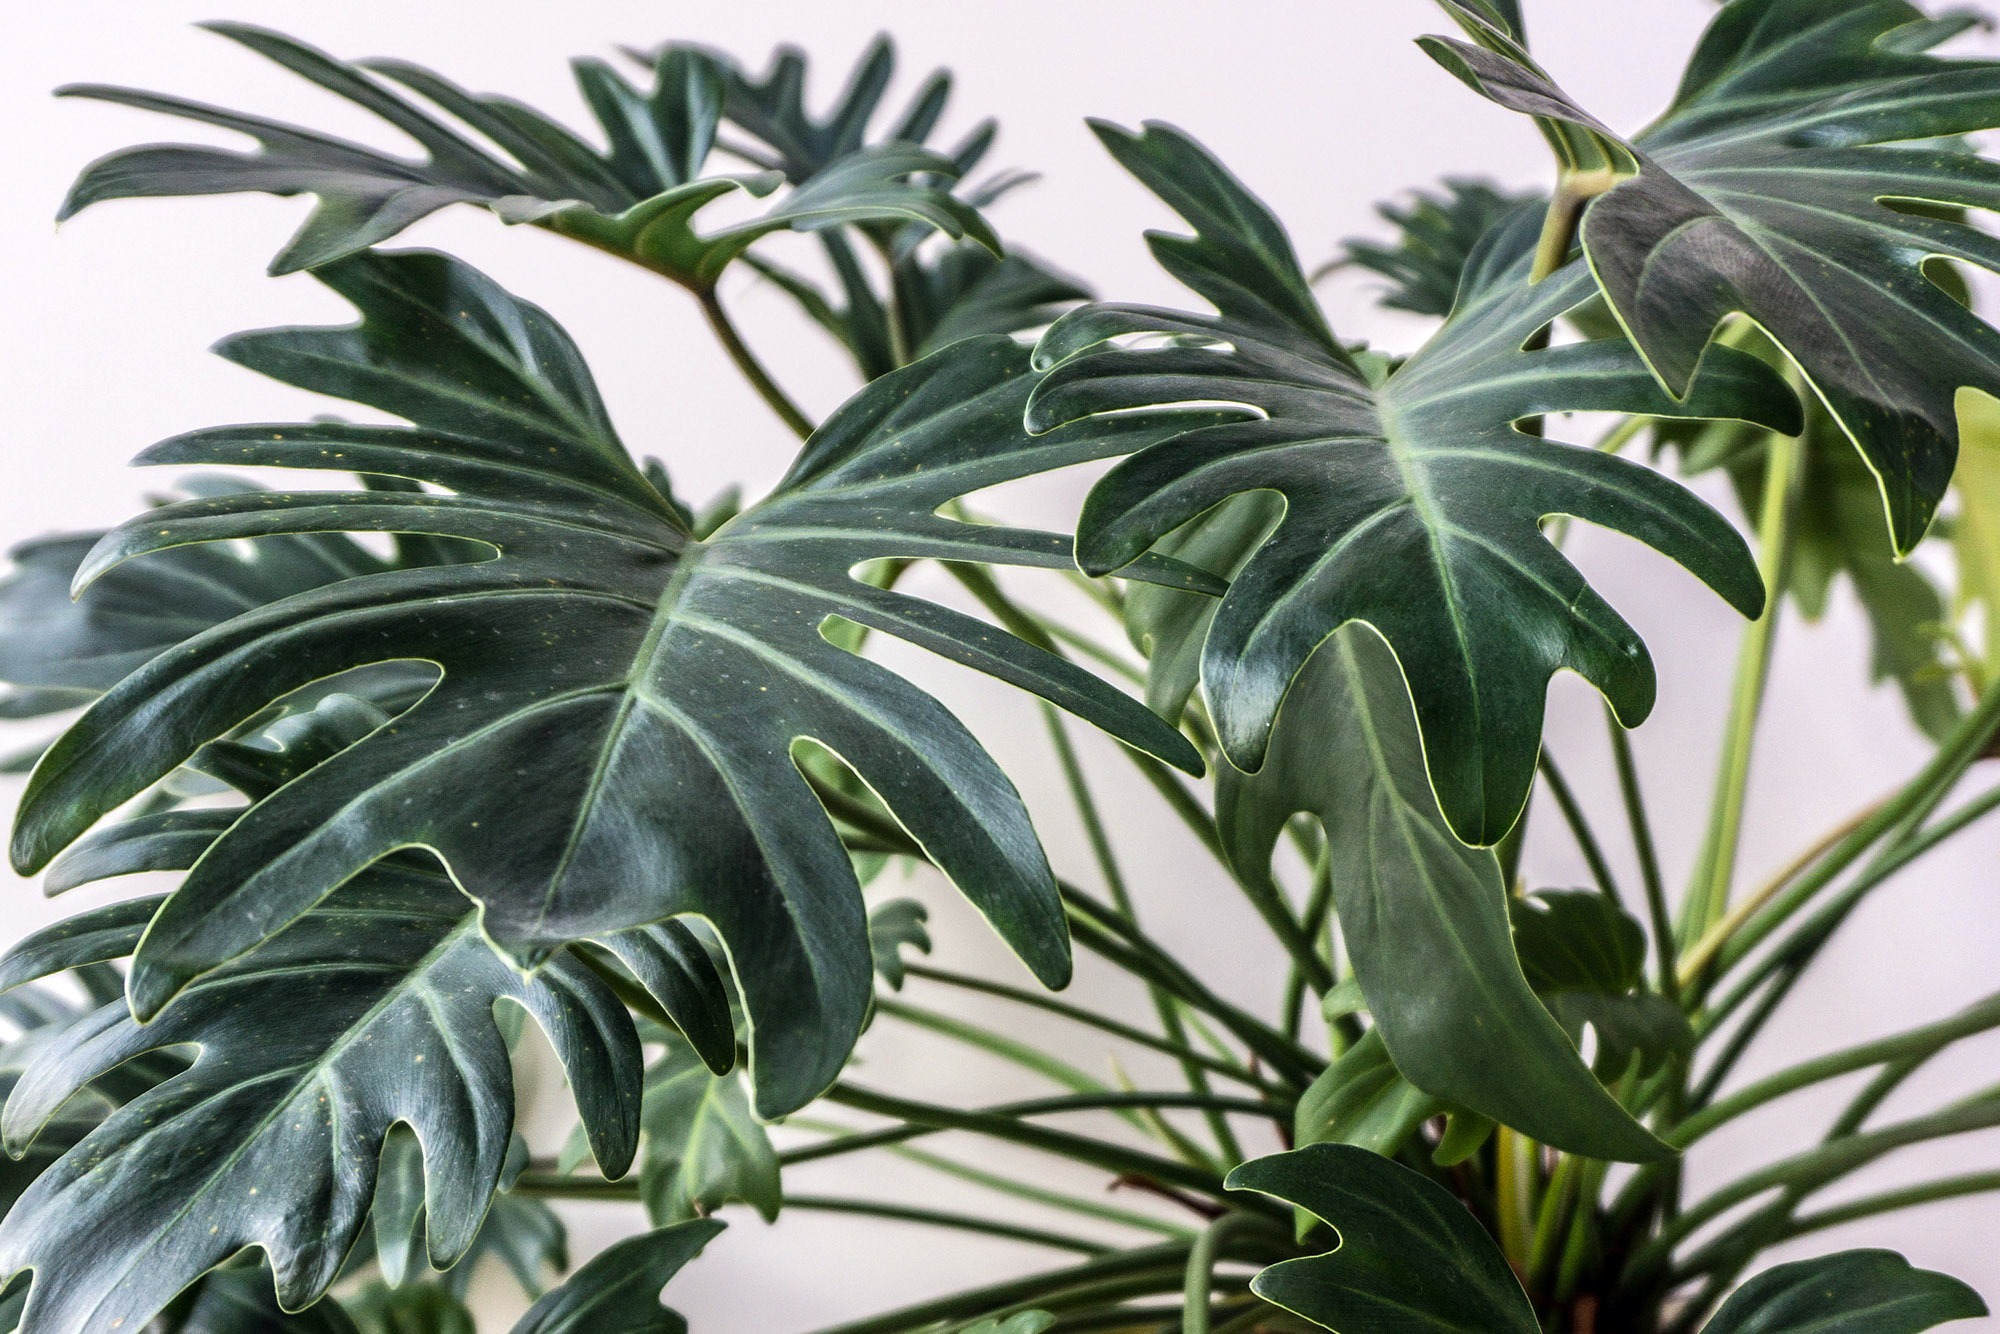 Puošnusis filodendras 'Philodendron elegans'